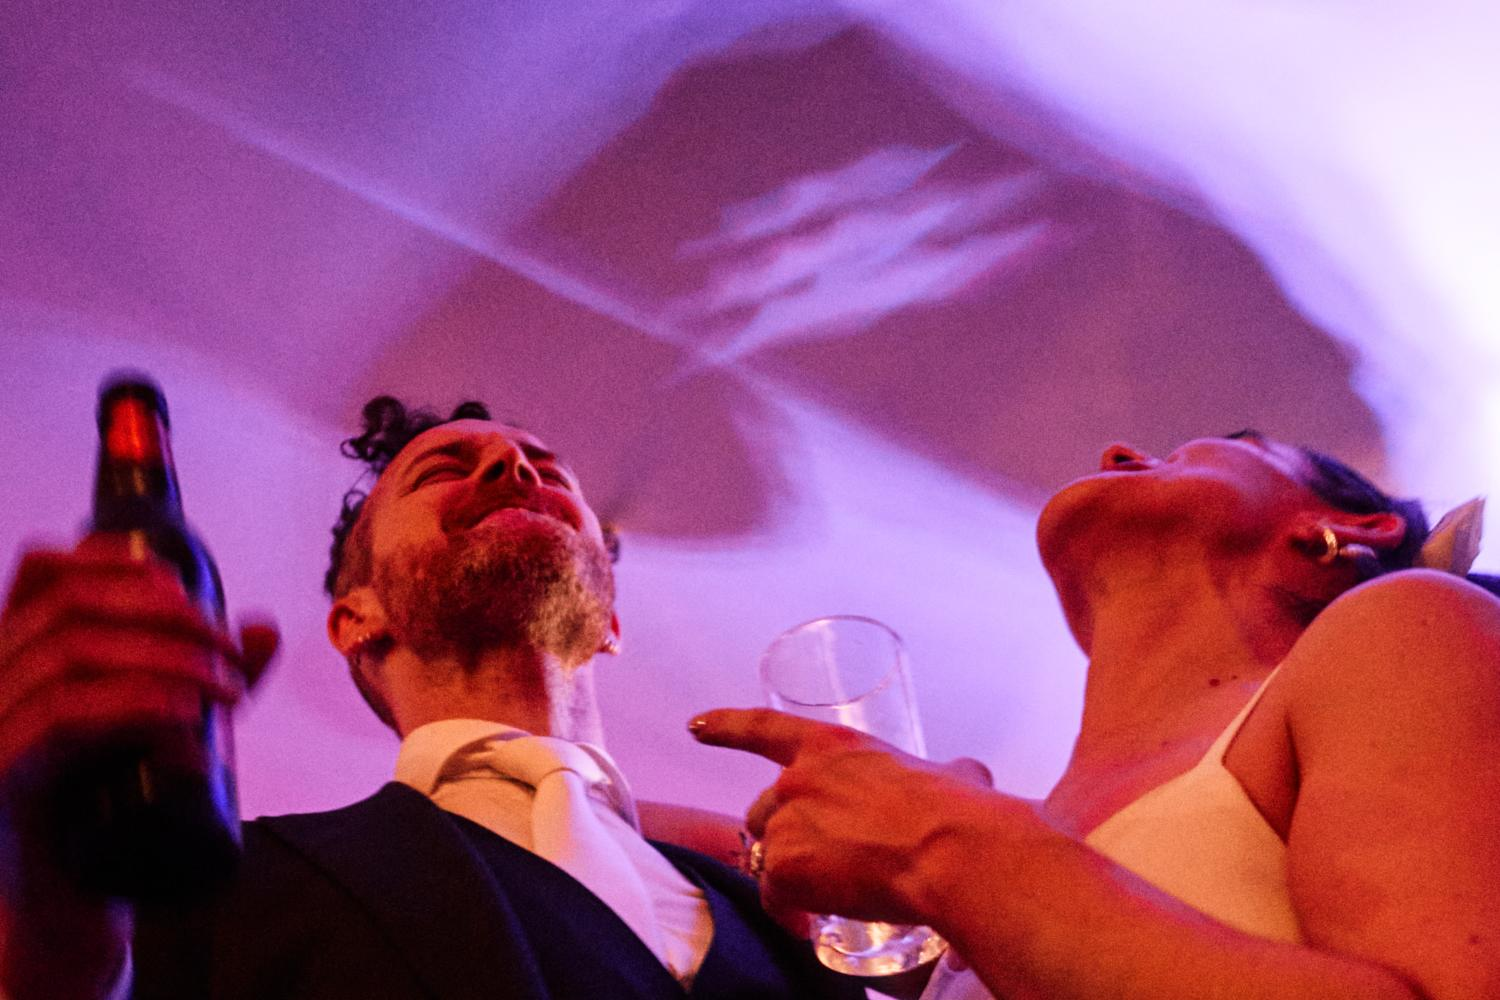 A bride and groom celebrate and dance with drinks